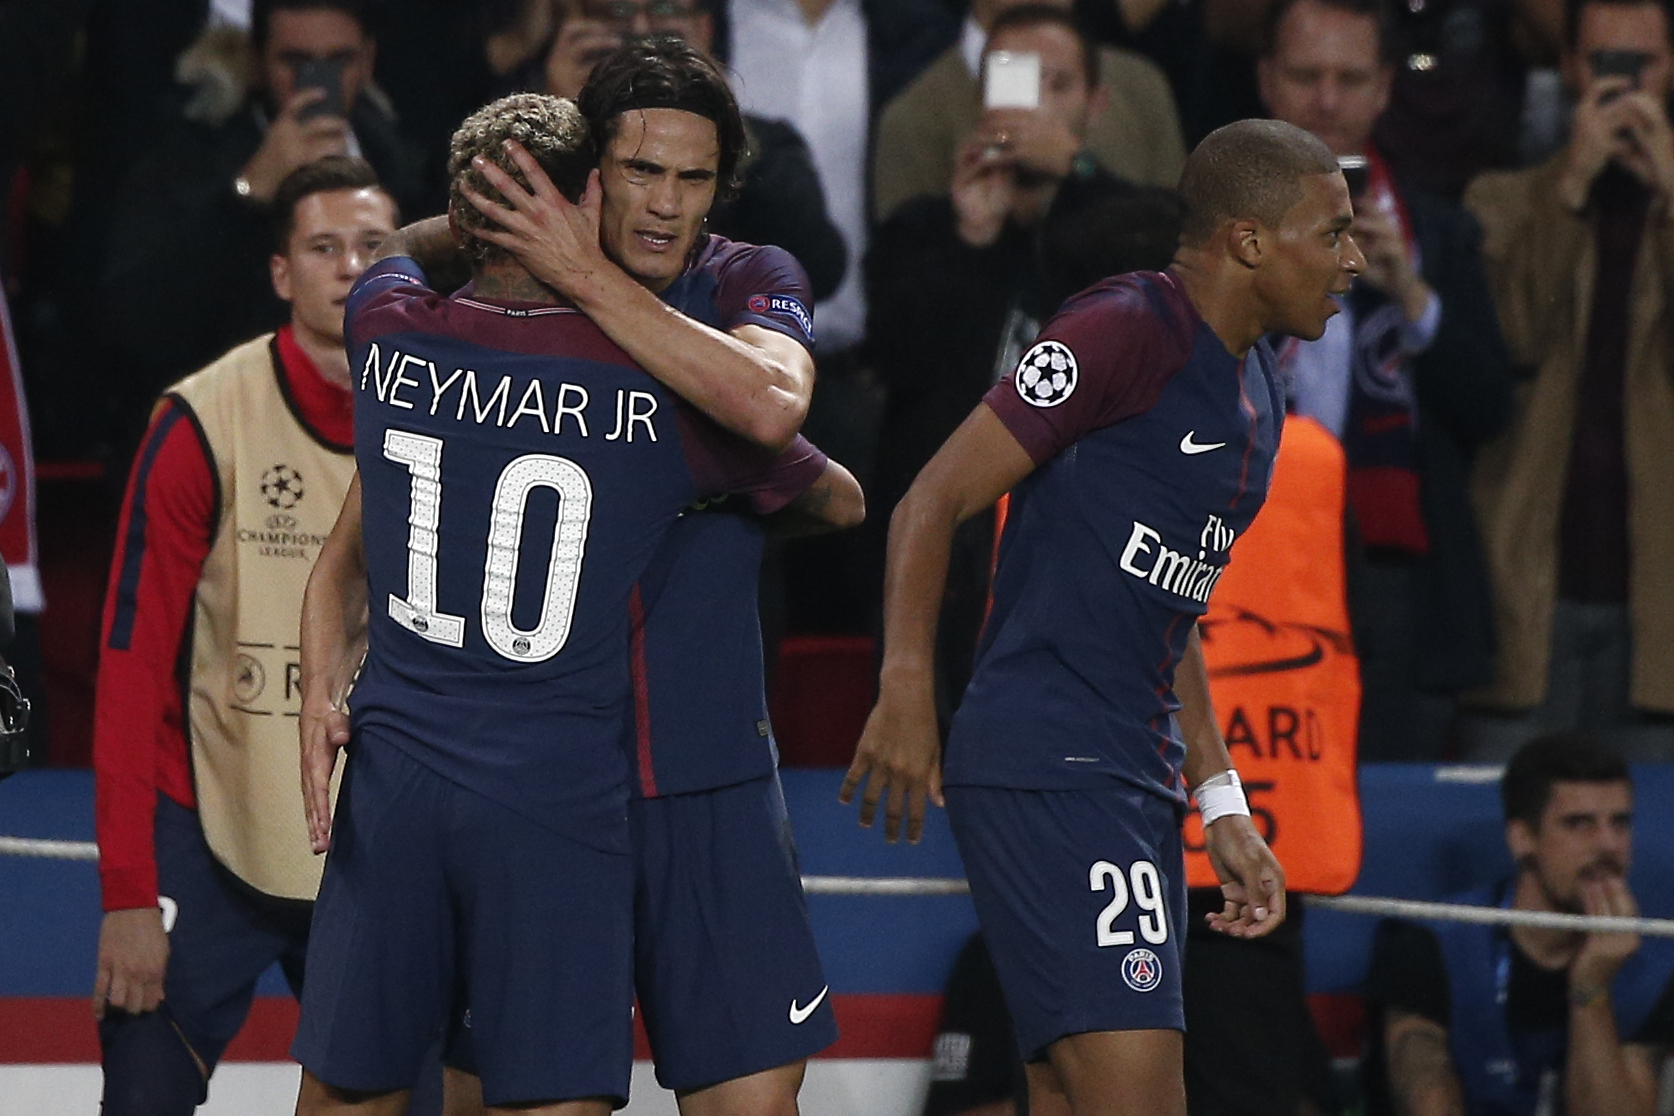 Neymar and Edinson Cavani during a Champions League game